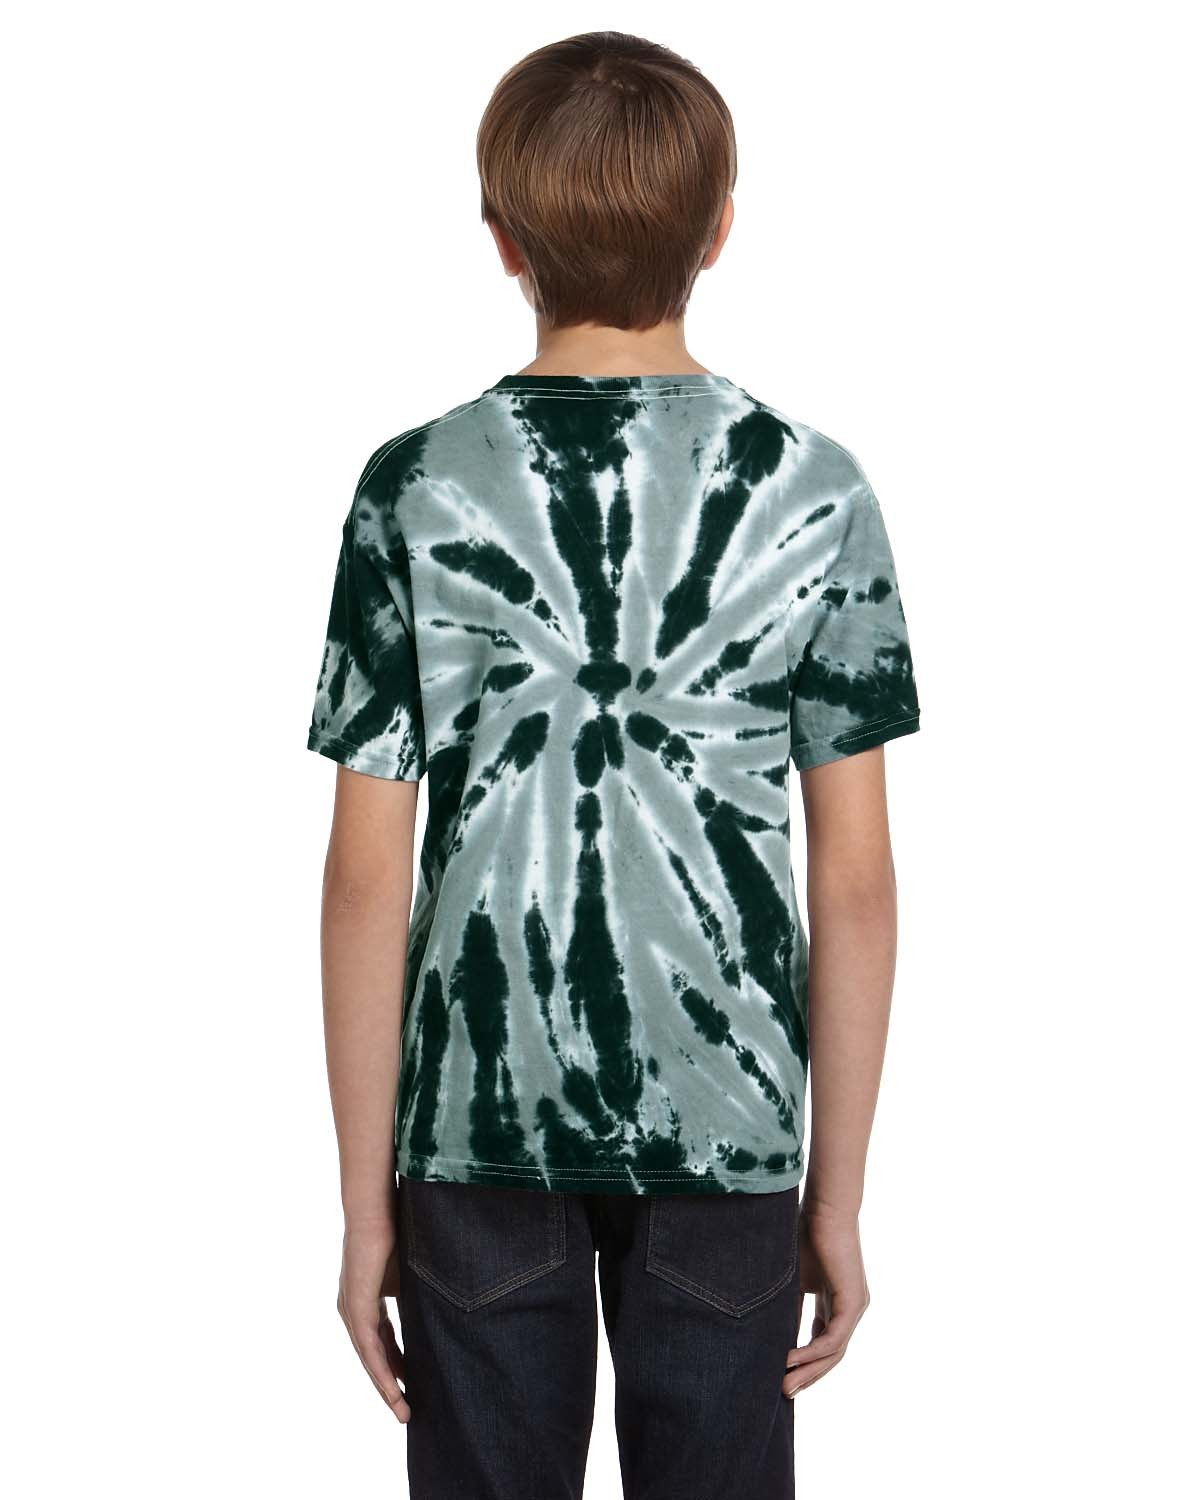 CD110Y Tie-Dye Drop Ship TWIST DARK GREEN